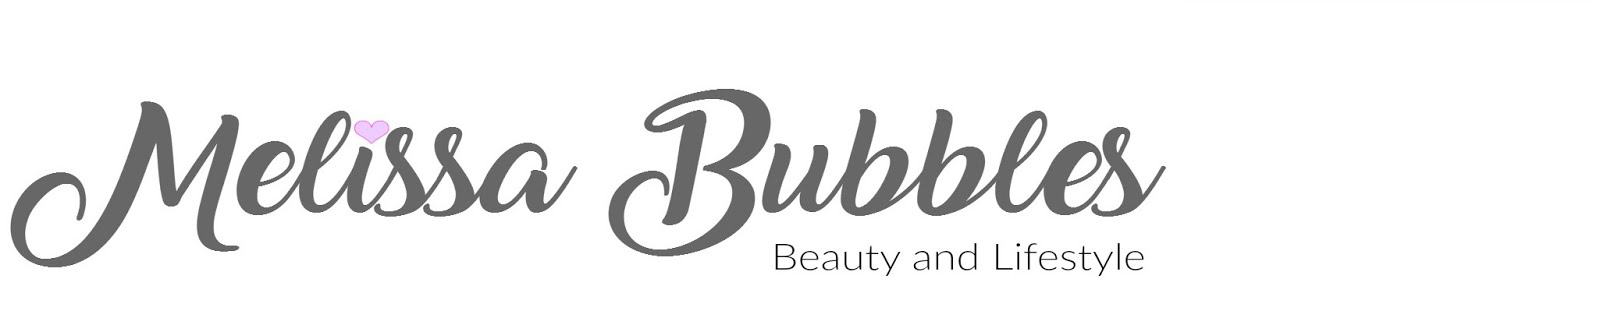 Melissa Bubbles Beauty, Fashion & Life!